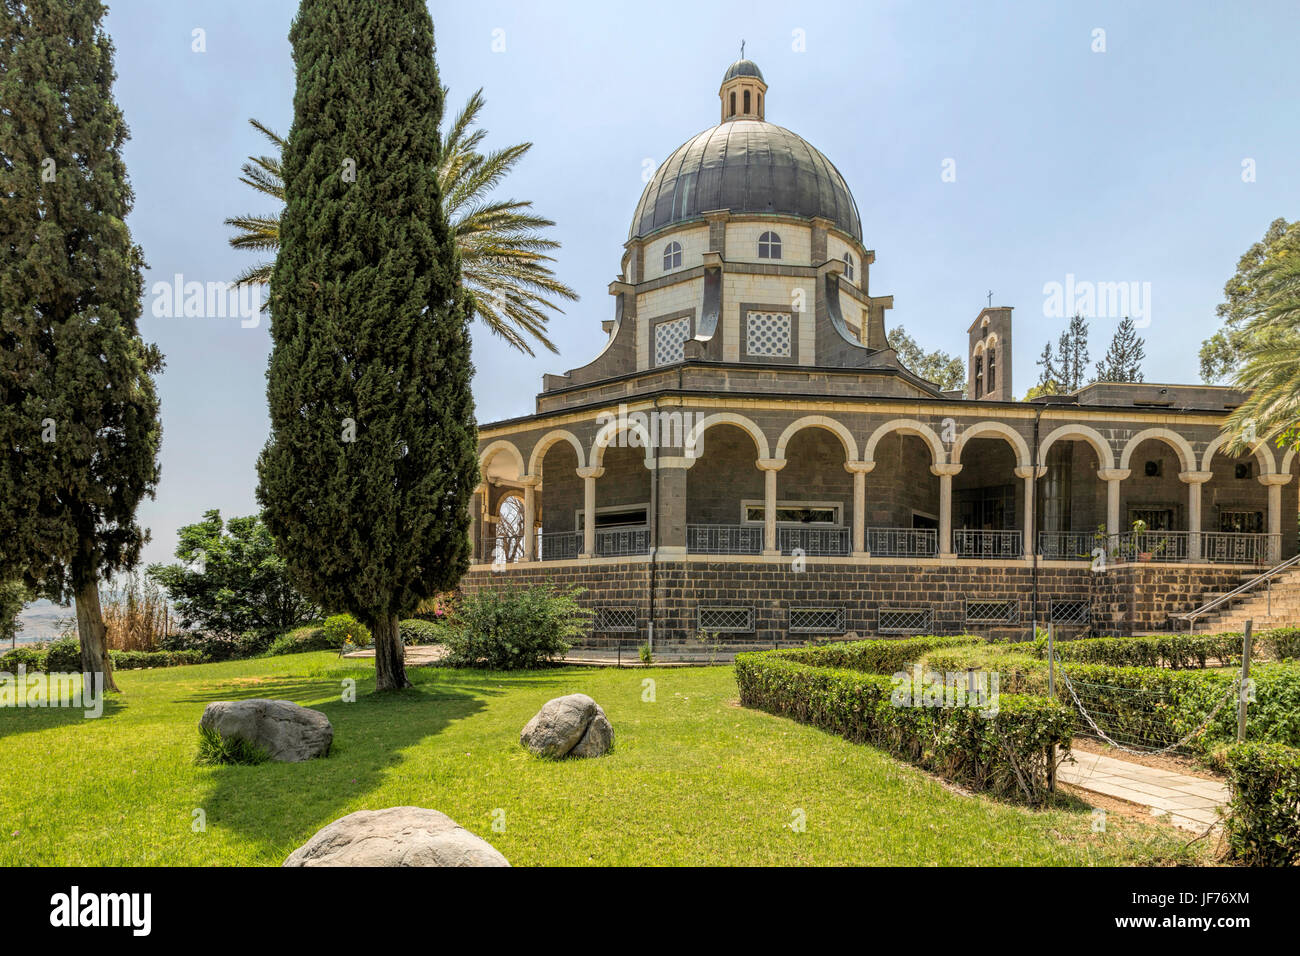 View of Cloister of Beatitudes church, famous location of the Sermon of the Mount, overlooking the Sea of Galilee, - Stock Image